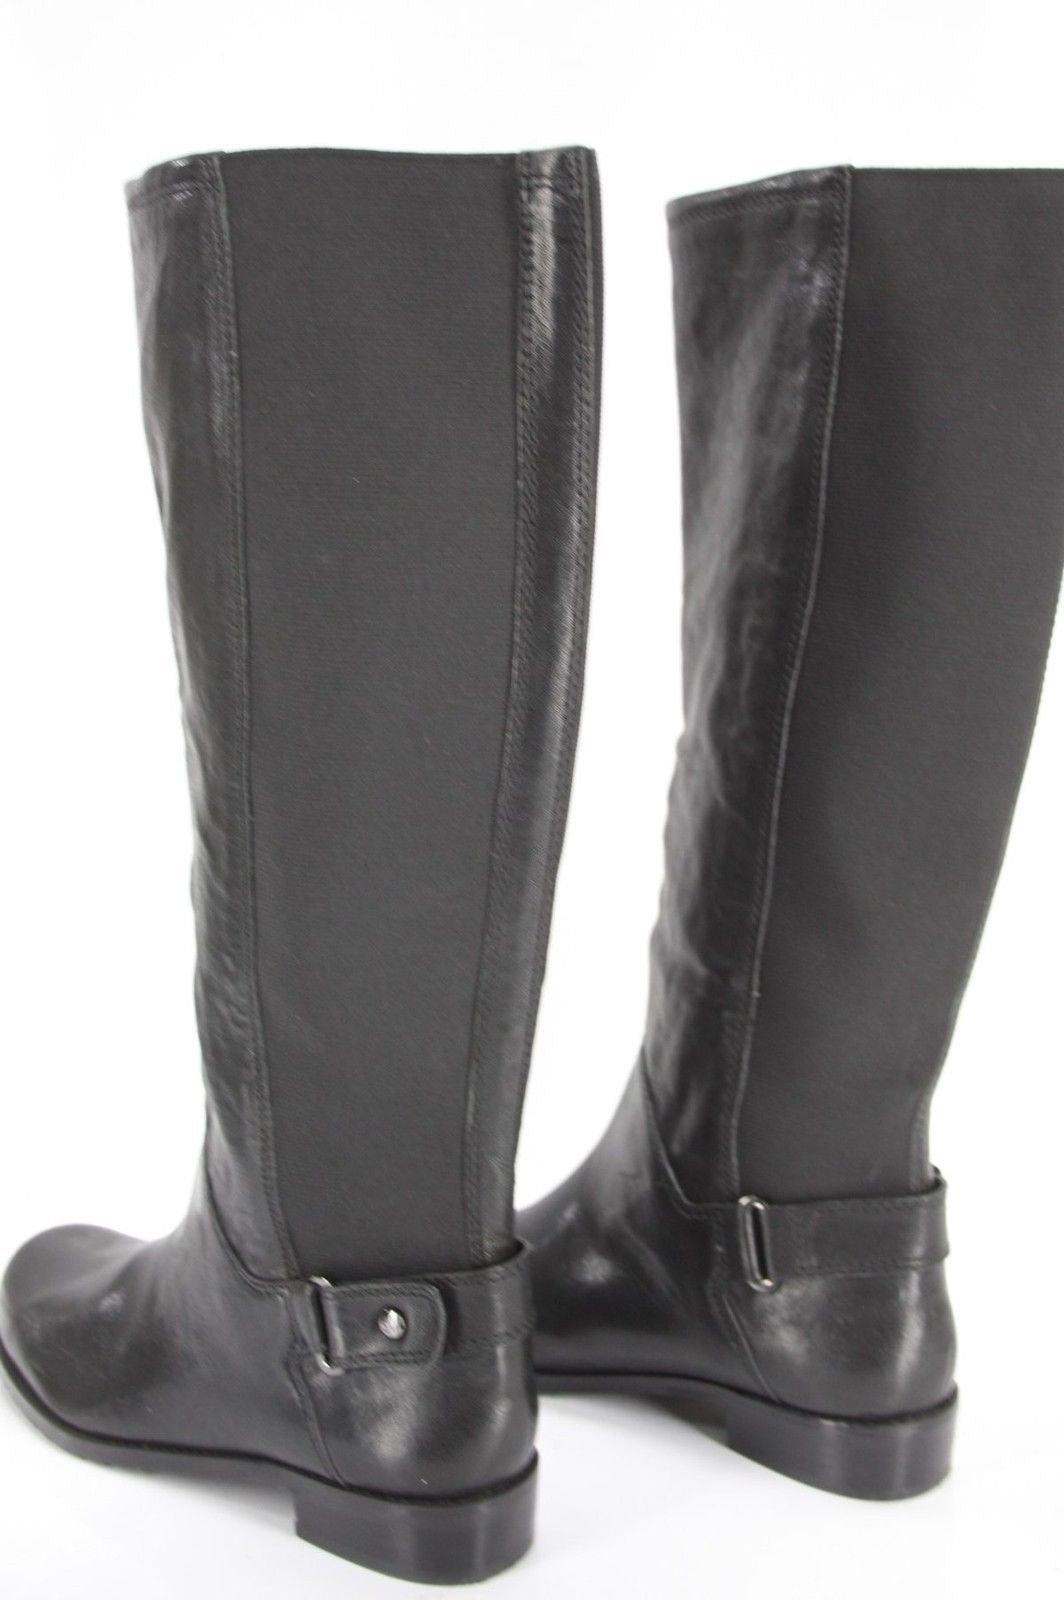 Stuart Weitzman Accumulate Black Knee High Riding Boot SZ 6.5 Stretch Back $625